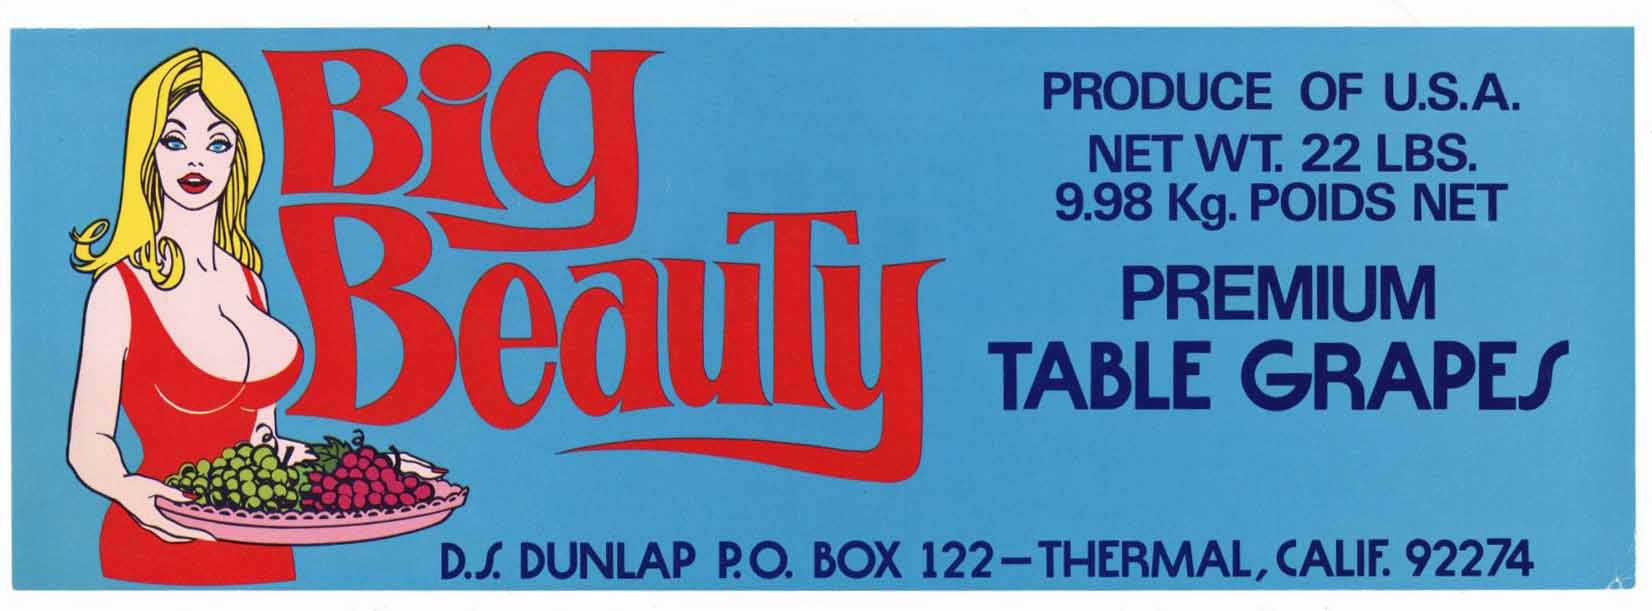 BIG BEAUTY Brand Vintage Grape Crate Label (LL143)